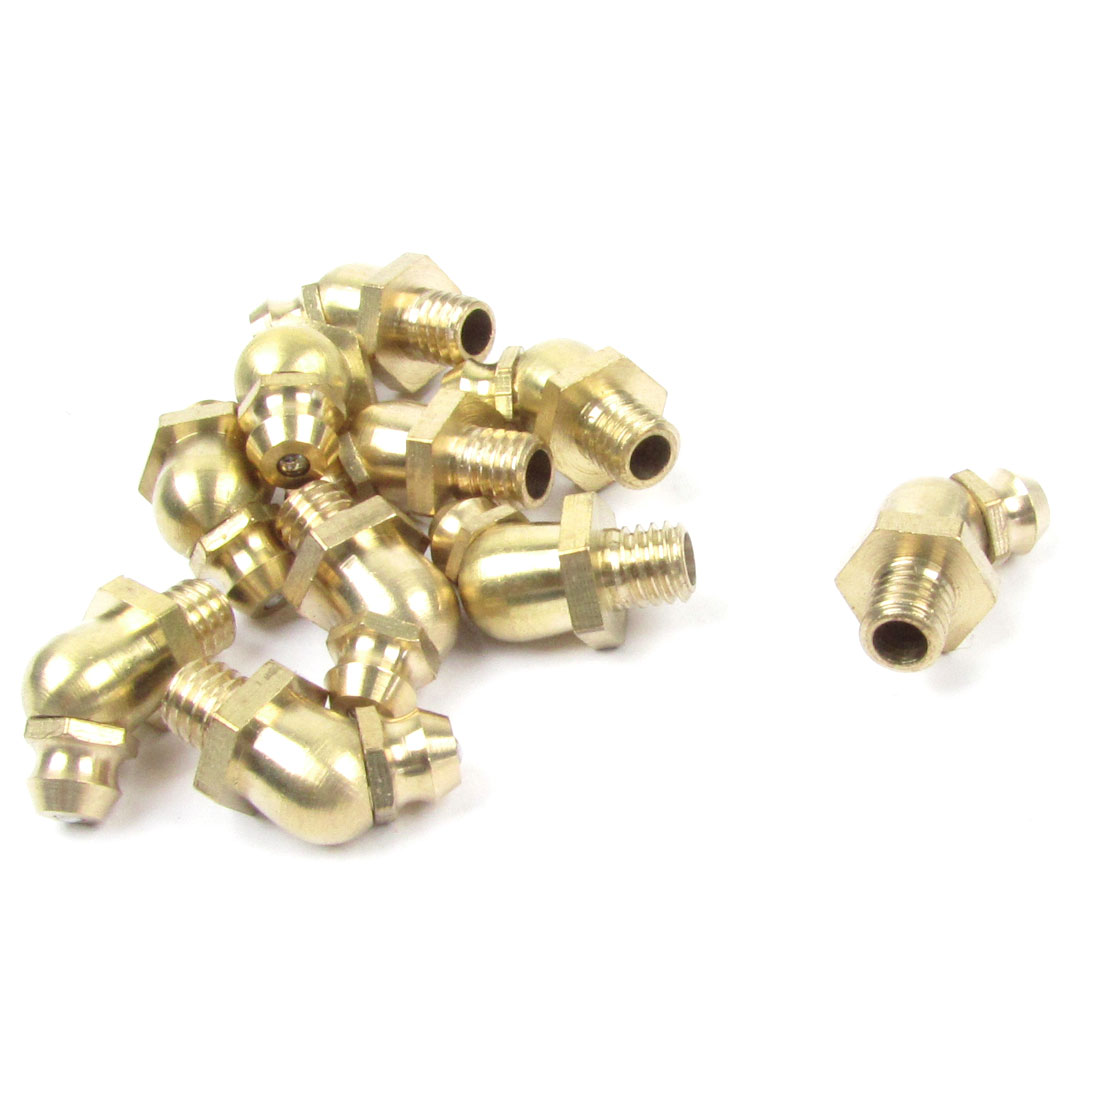 6mm Dia Male Thread 45 Degree Brass Hydraulic Grease Nipple Fitting 10 Pcs